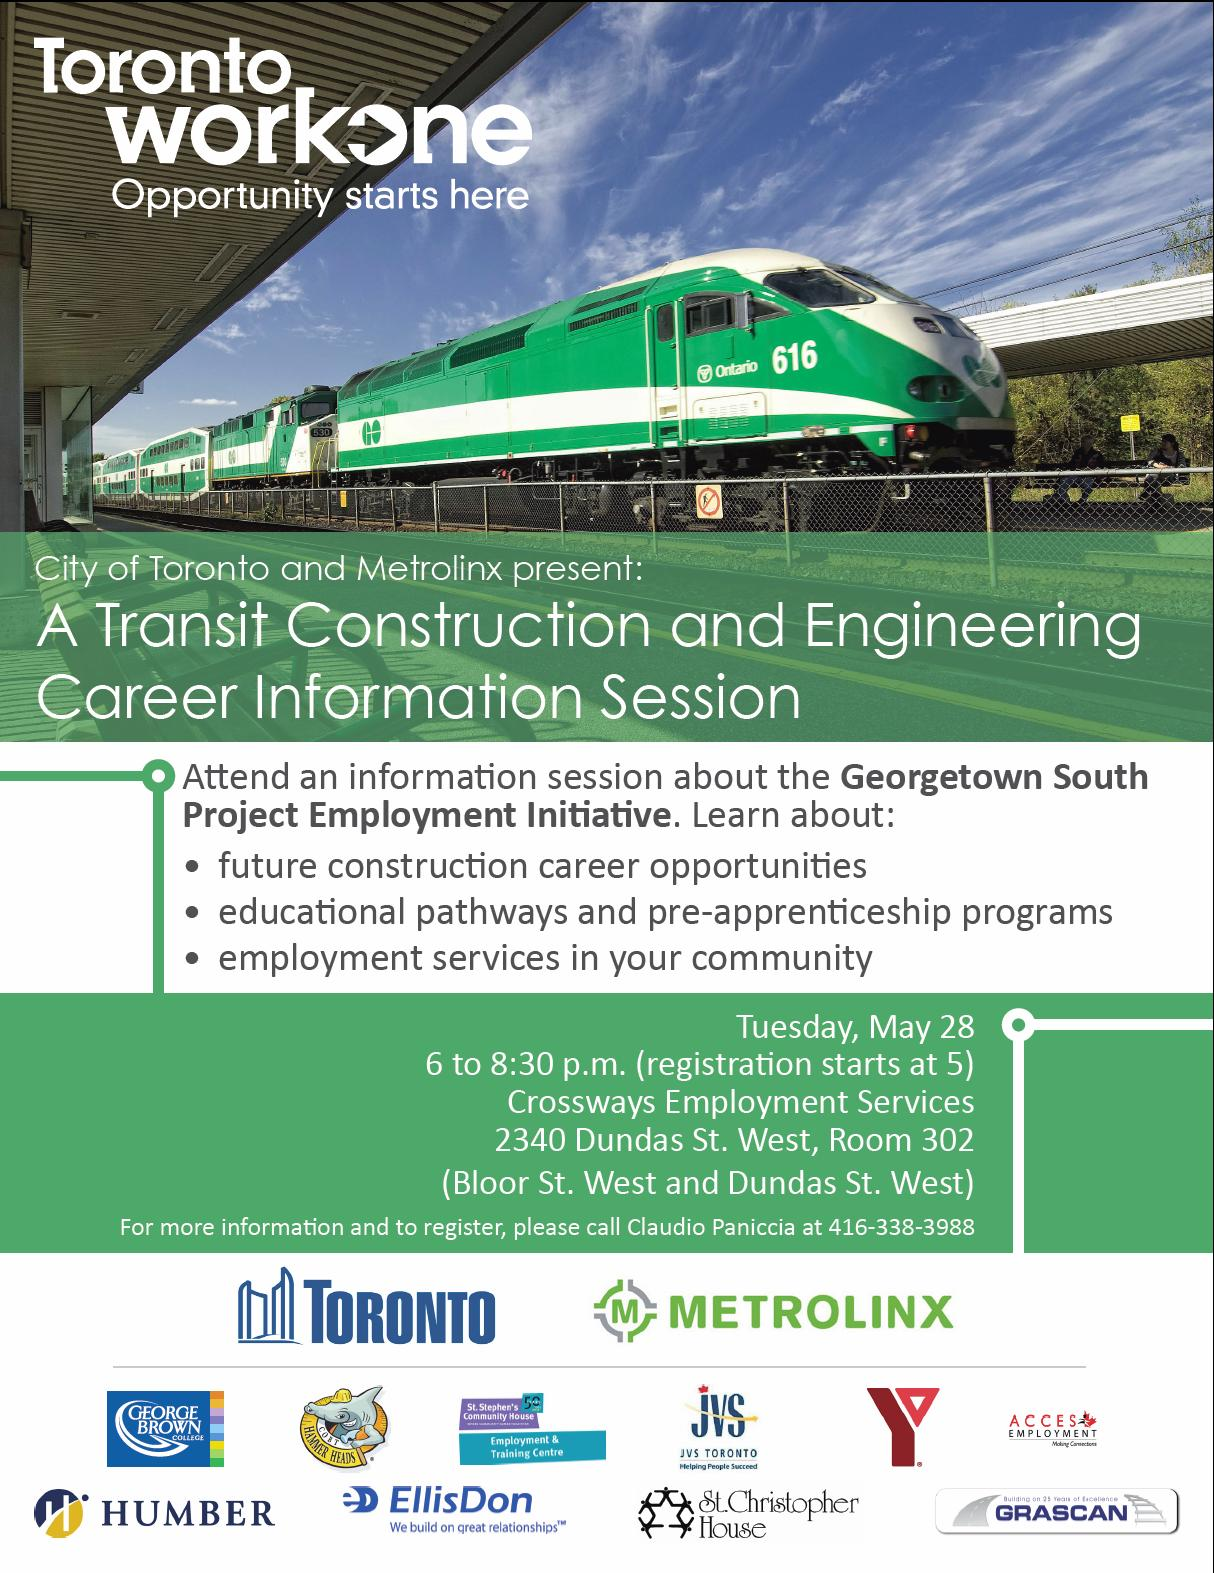 Transit Construction and Engineering Career Information